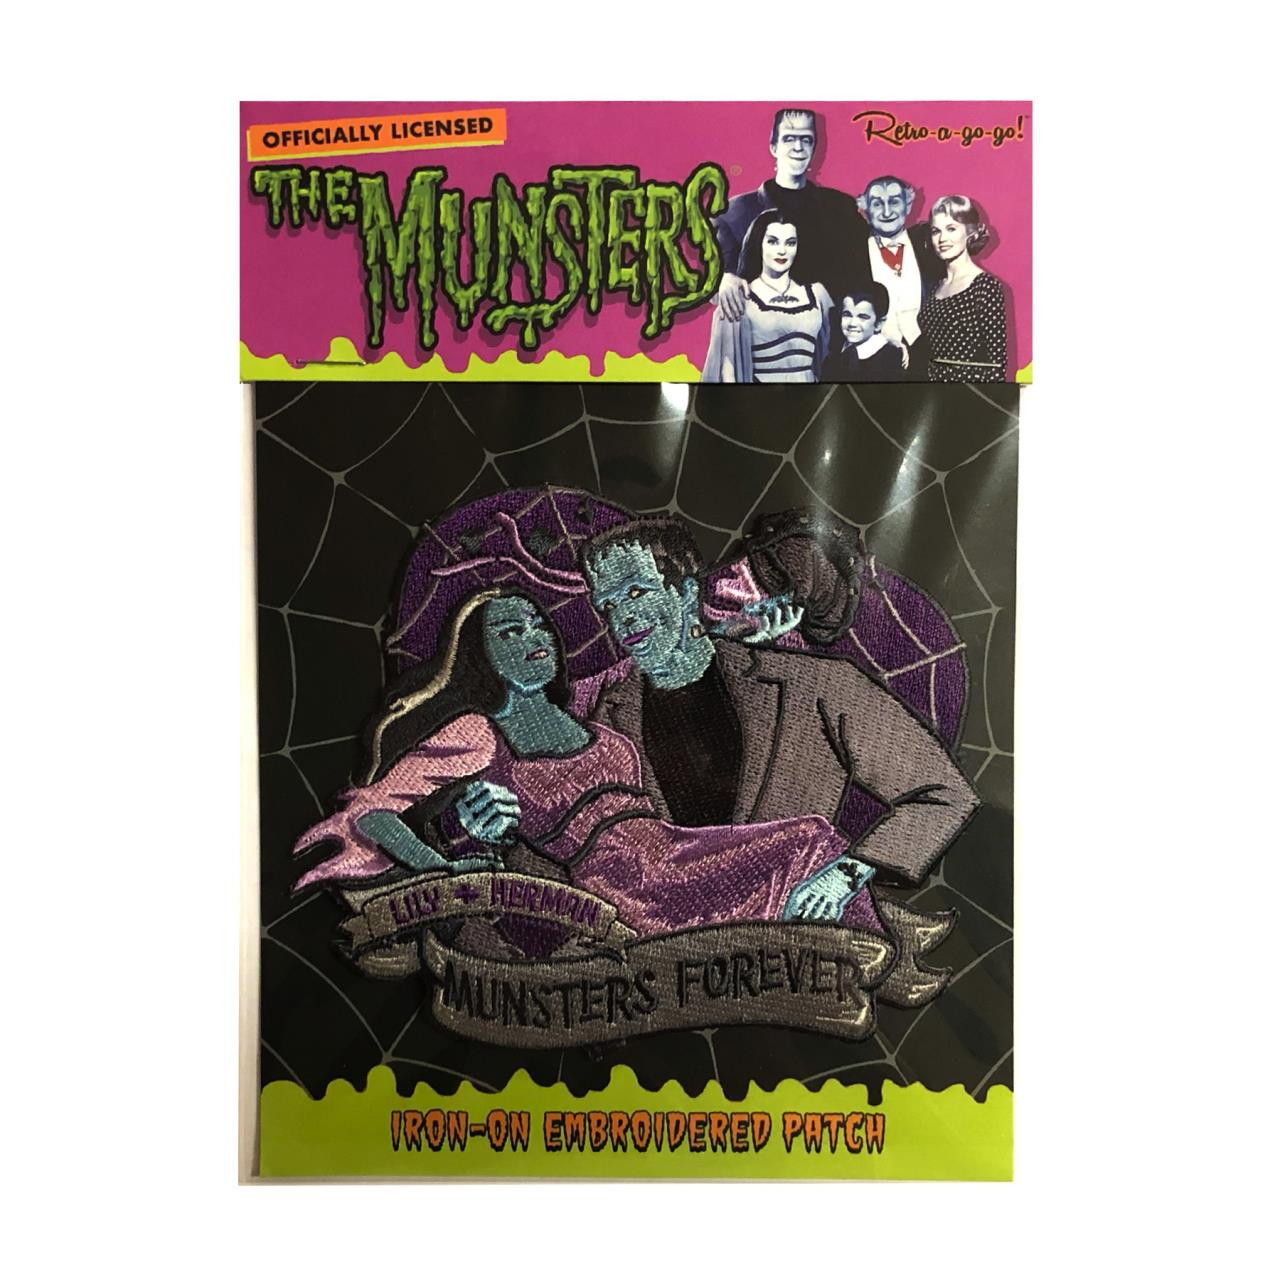 Munsters Forever Patch* - 0659682815589